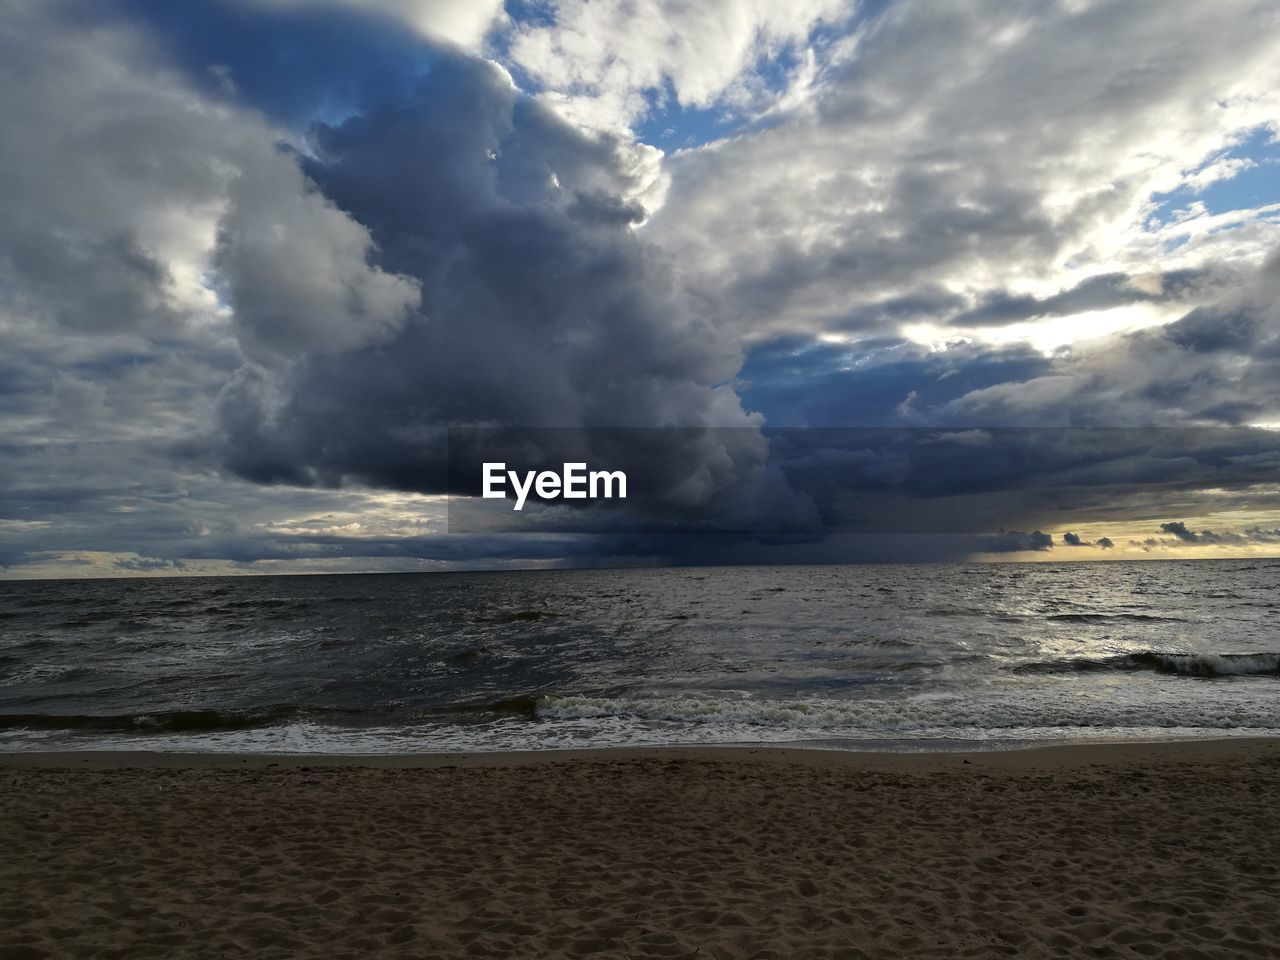 sea, cloud - sky, sky, beach, nature, beauty in nature, water, horizon over water, scenics, power in nature, no people, sand, outdoors, tranquil scene, tranquility, wave, day, storm cloud